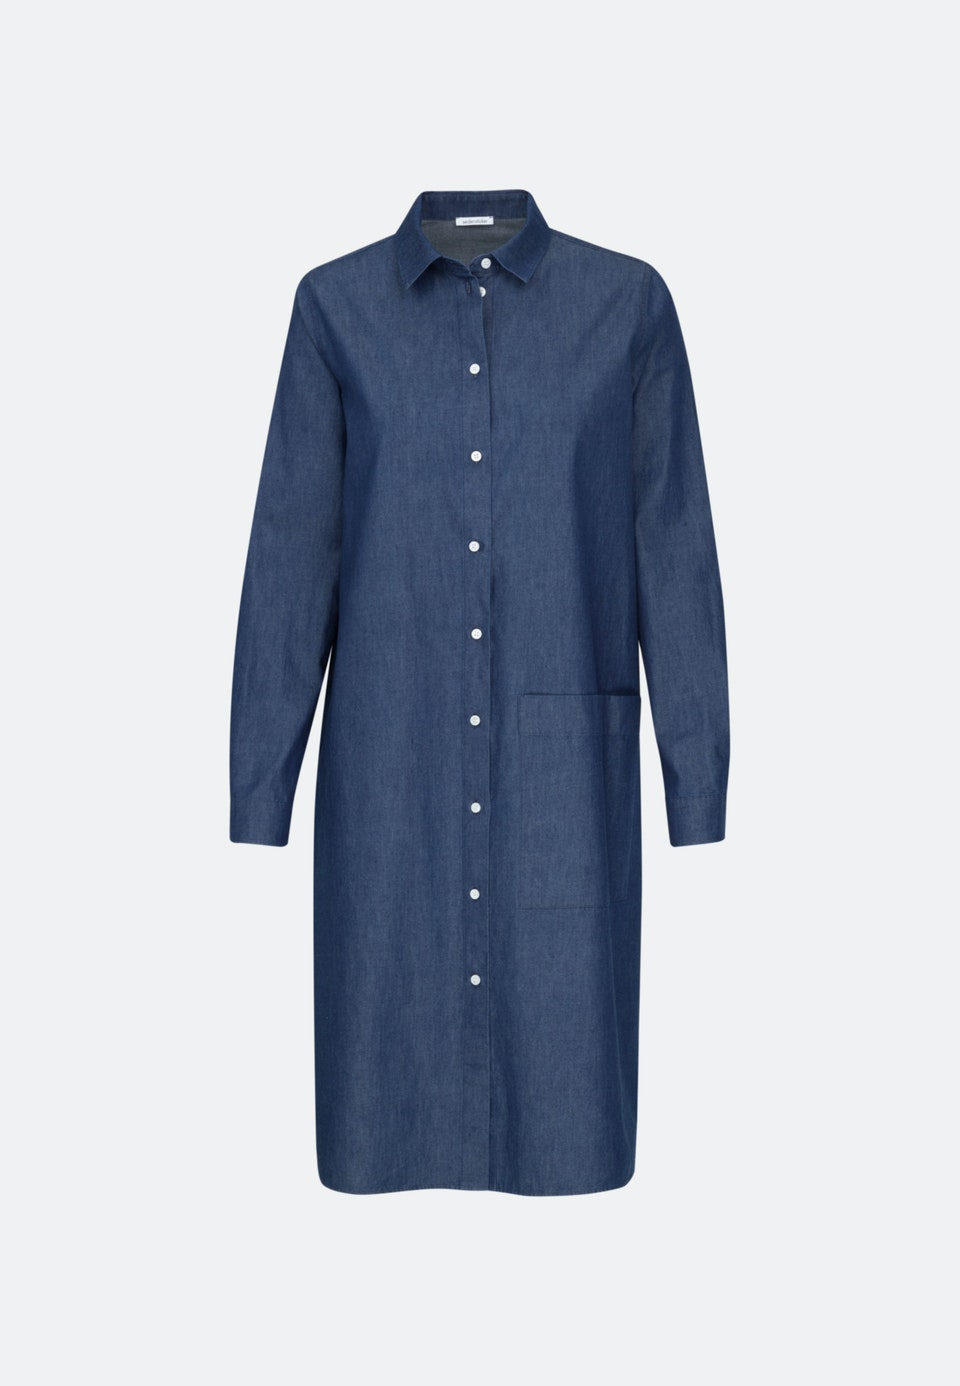 Denim Midi Dress made of 100% Cotton in Dark blue |  Seidensticker Onlineshop